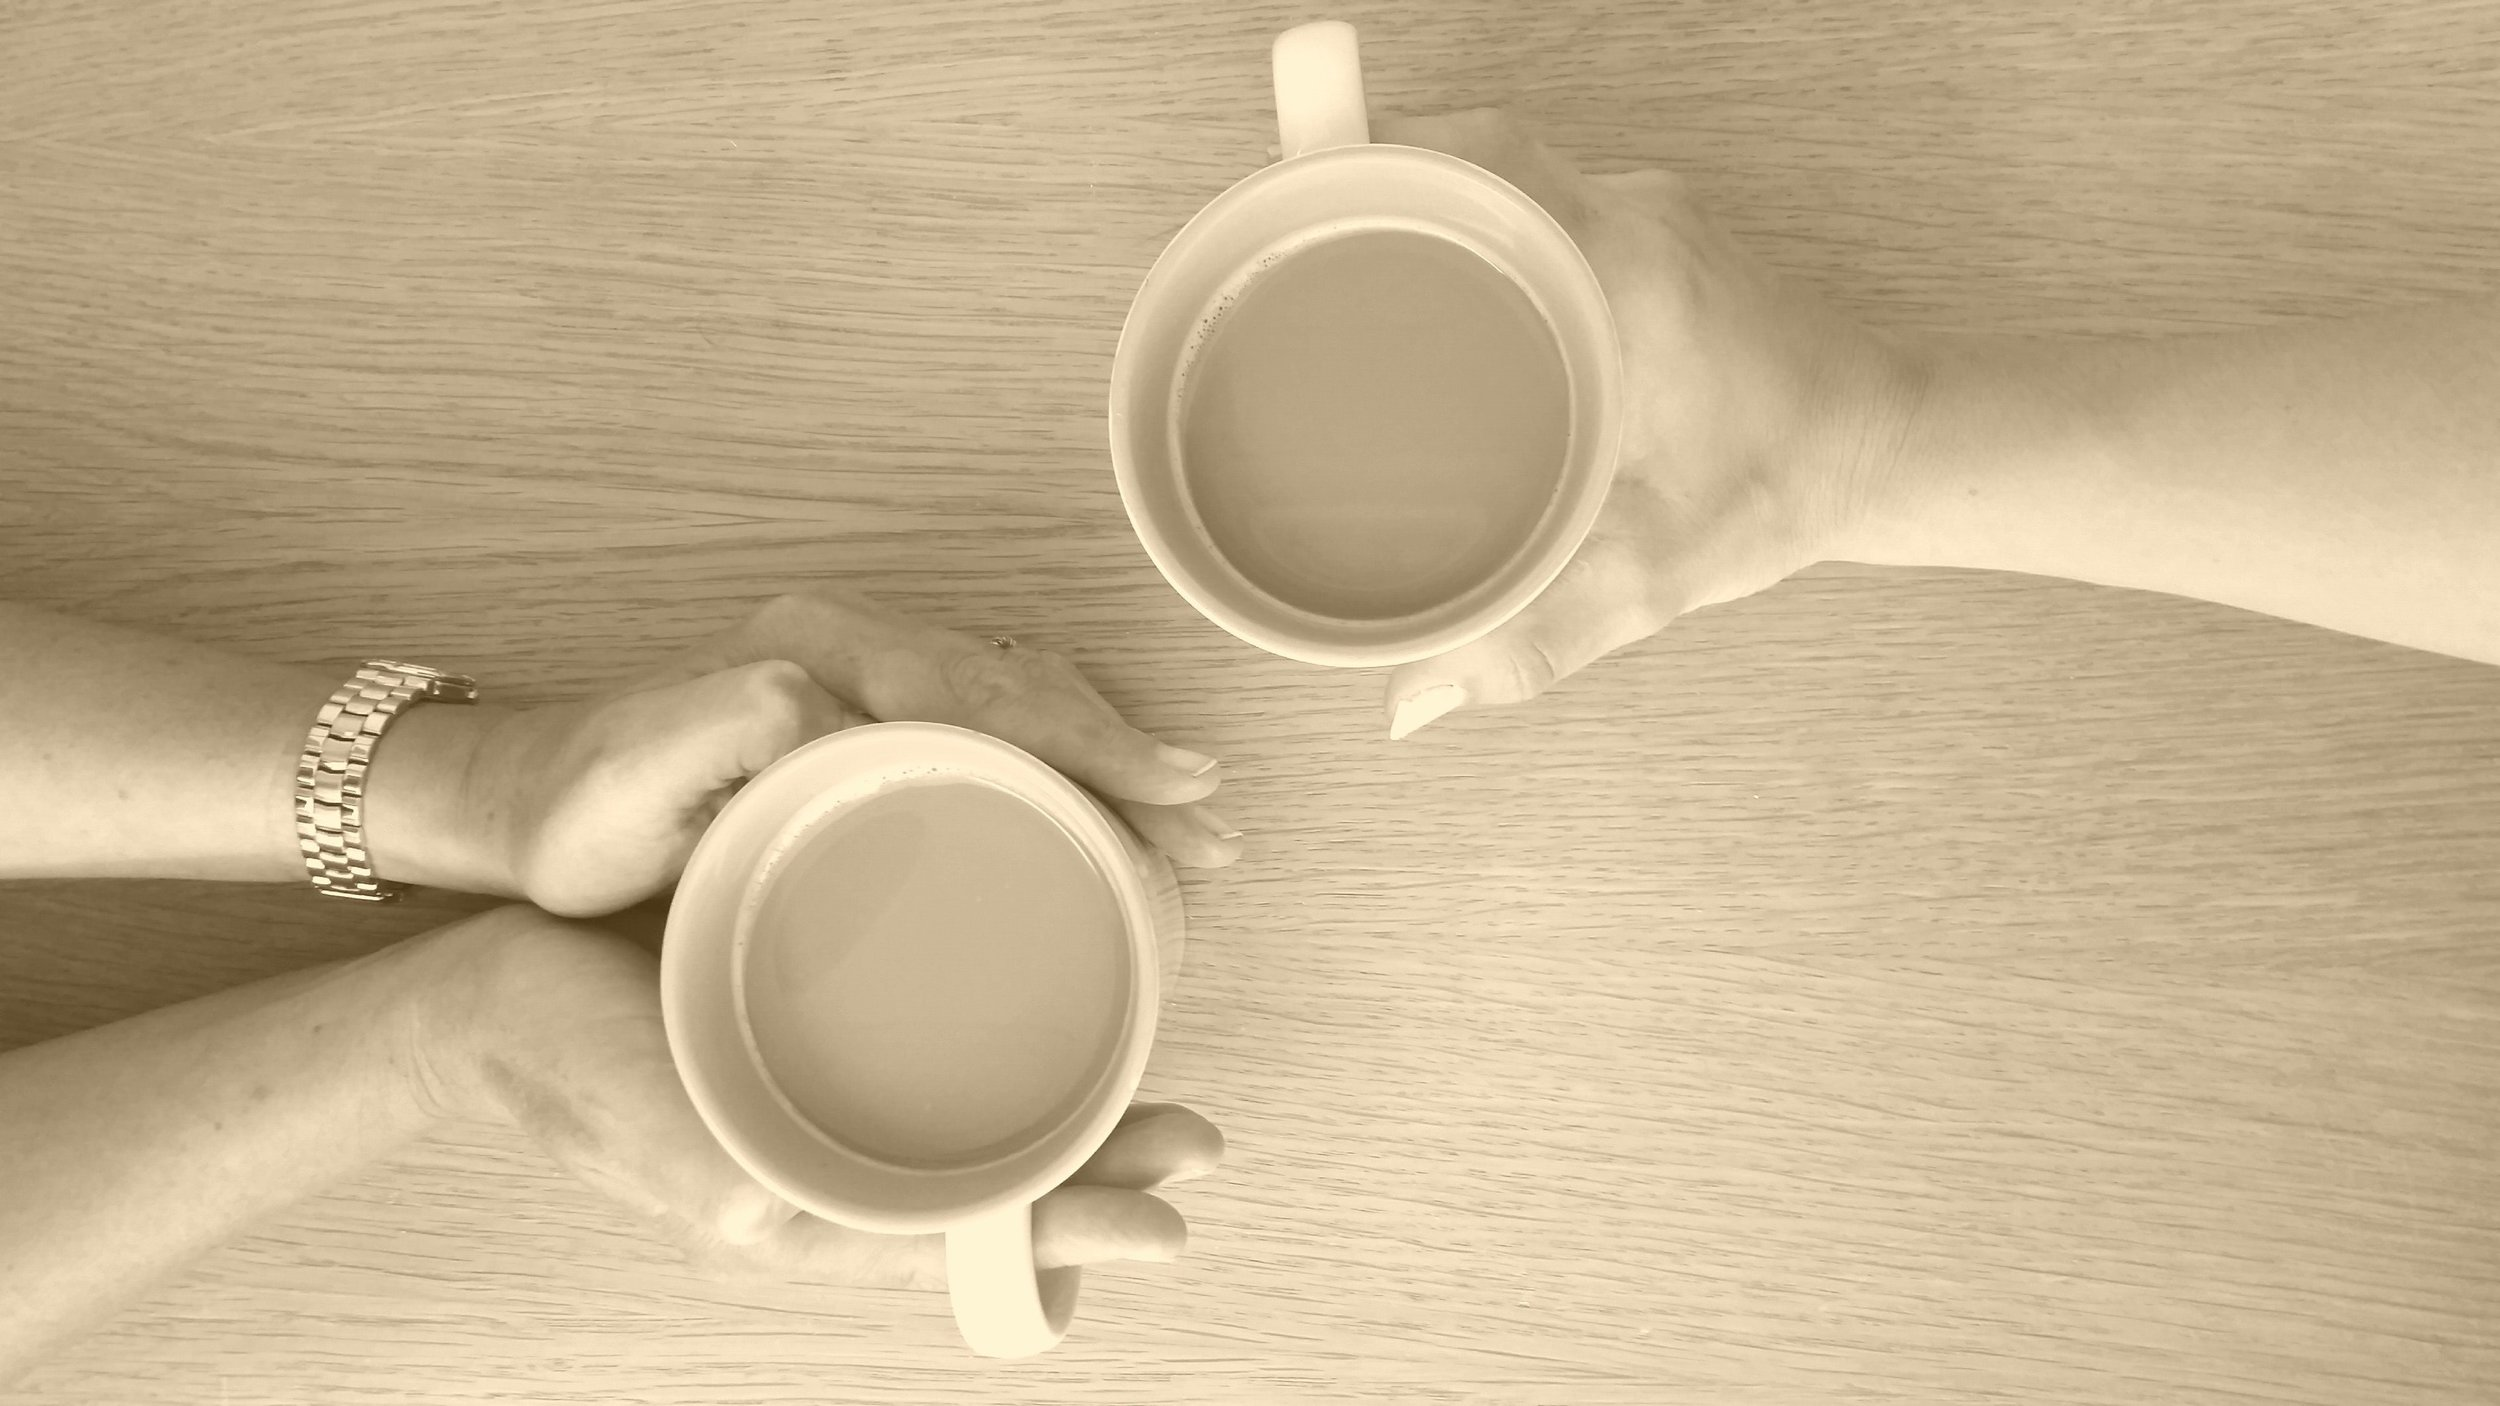 Your resource - Let's grab a virtual cup of coffee and talk about how to navigate the pharmacy market and make sure you're getting the best value. Or get in touch with us here to get together over a real cup!